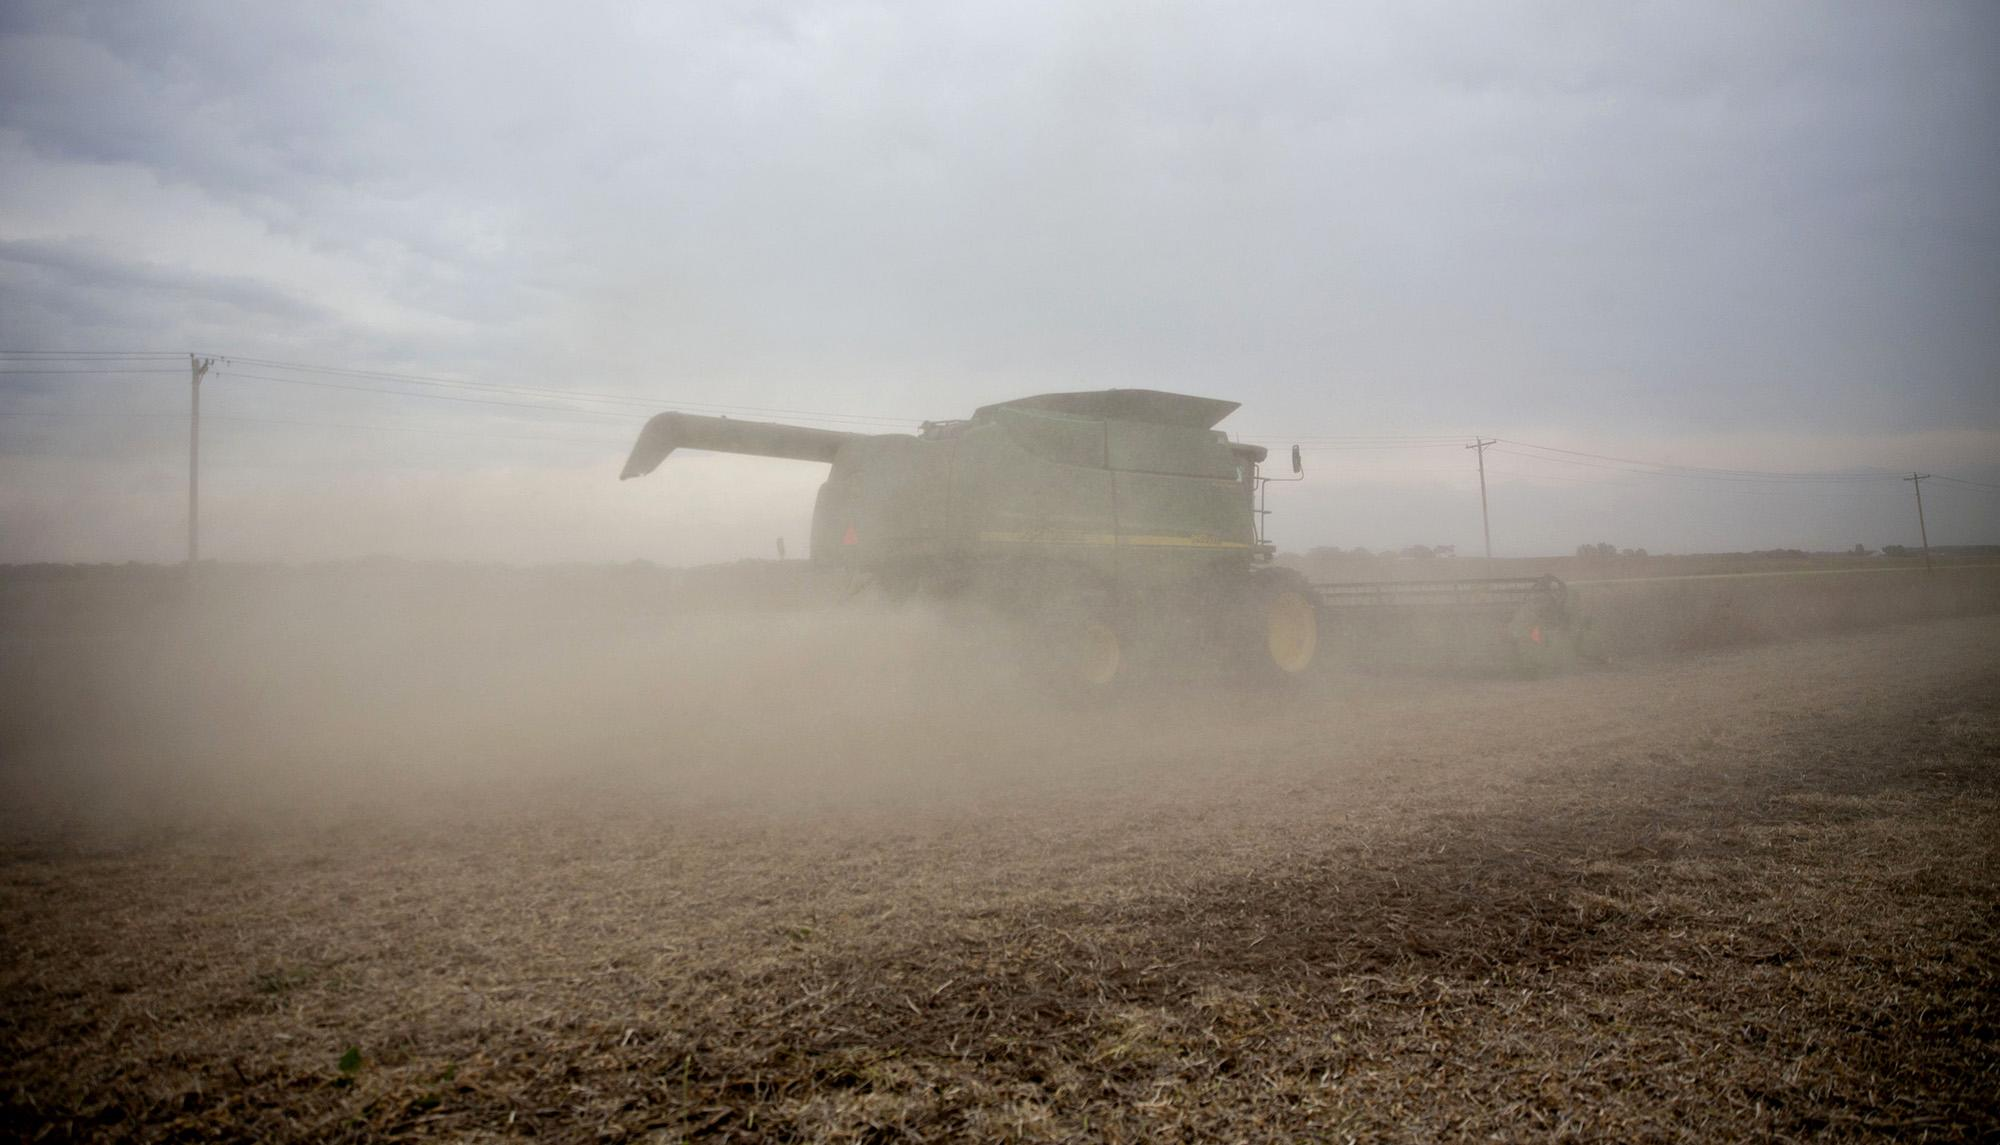 It's Not Just Corn, U.S. Farmers May Forgo Near-Record Soy Acres